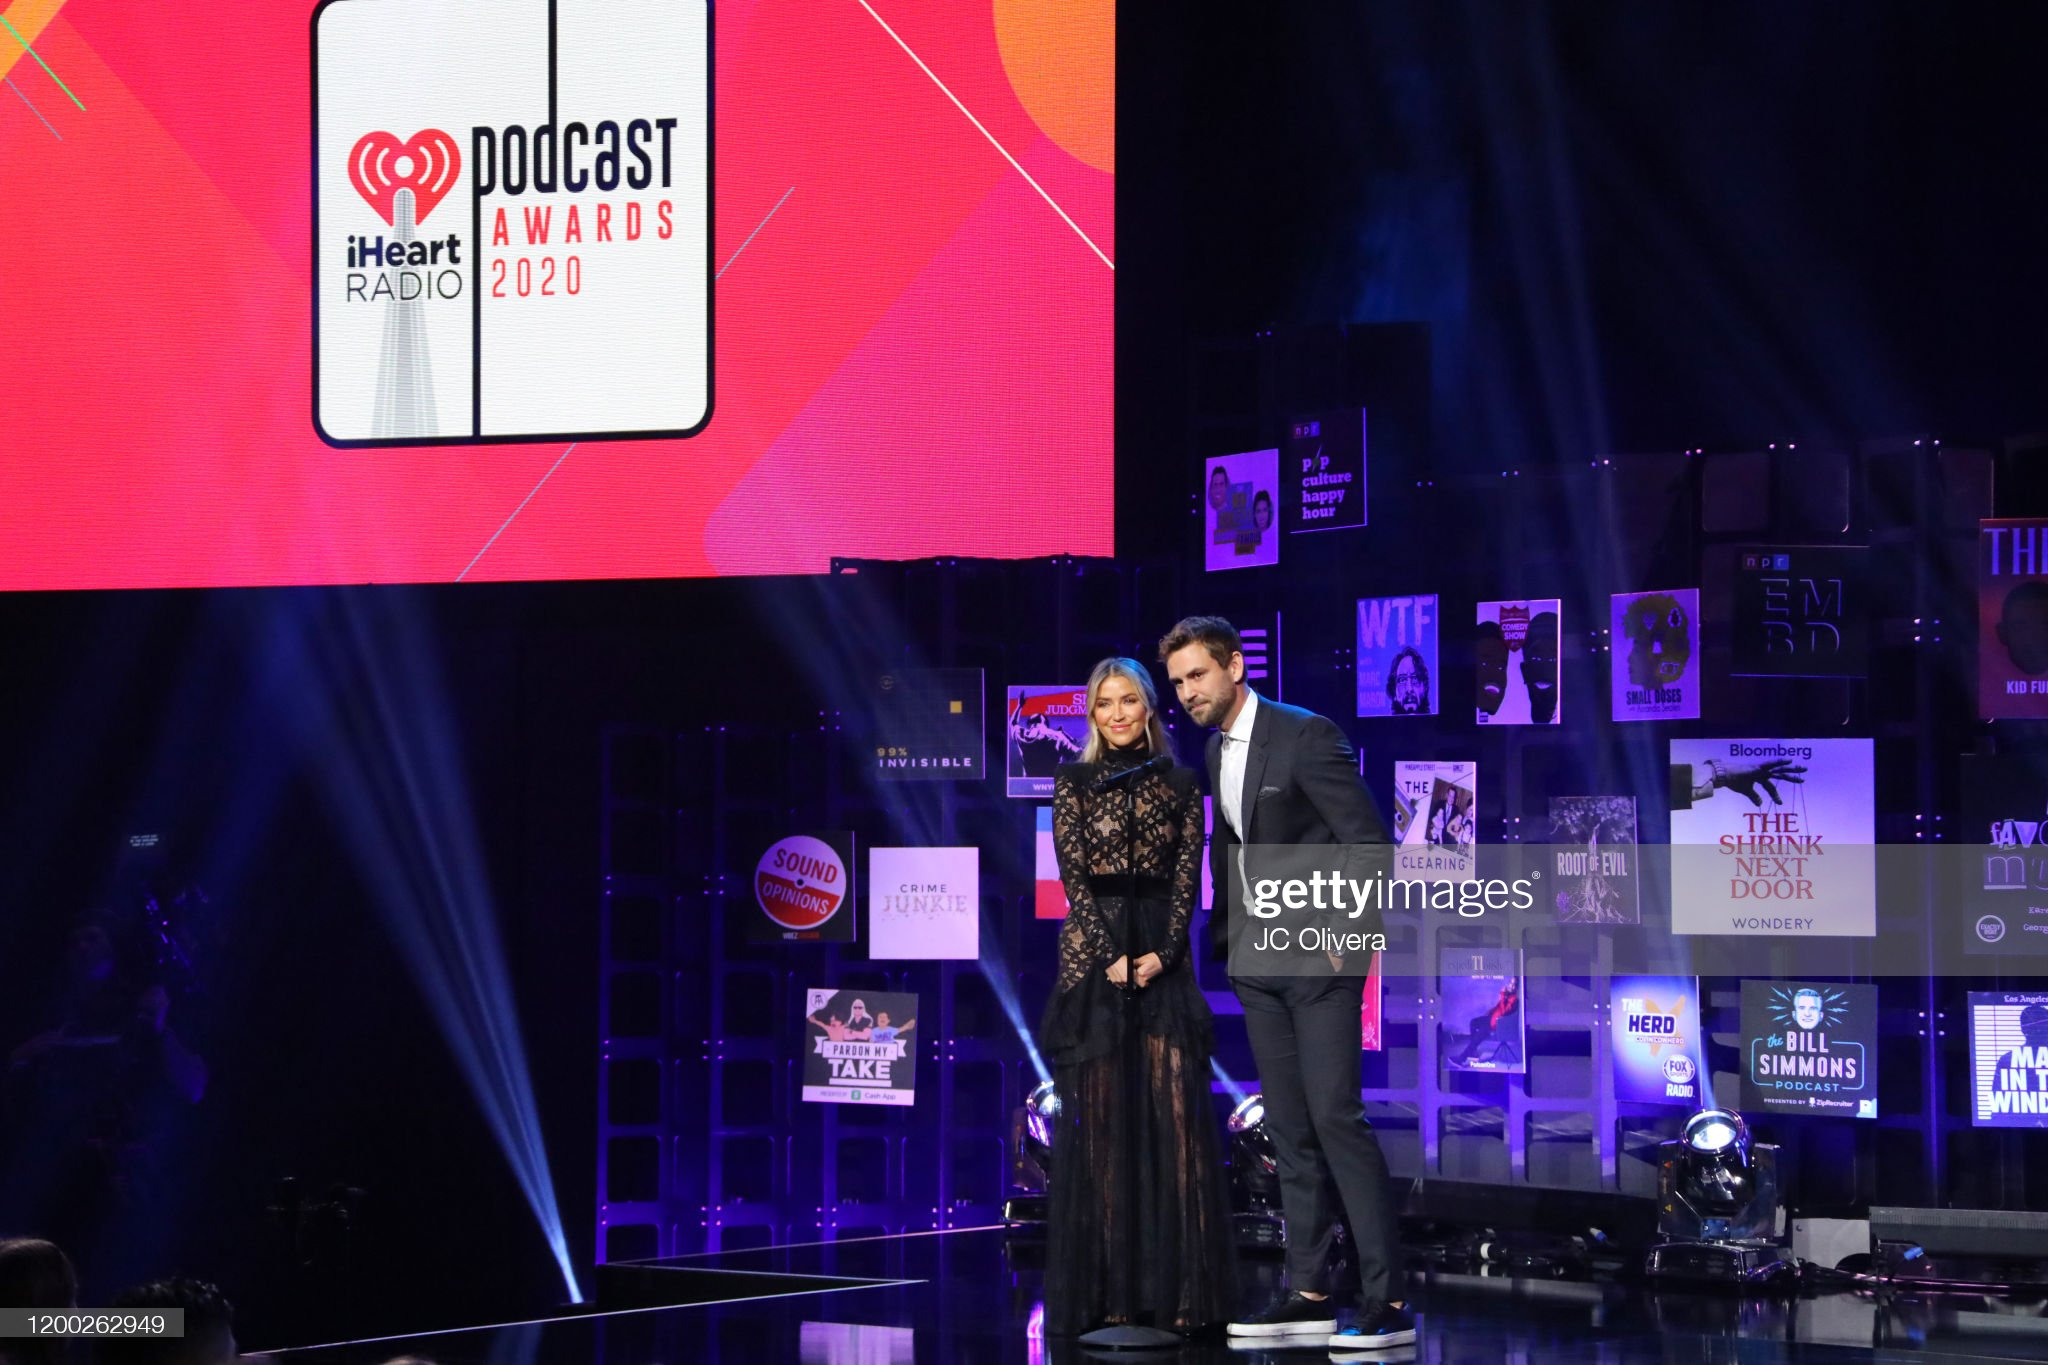 Kaitlyn Bristowe - Jason Tartick - FAN Forum - Discussion  - Page 51 Kaitlyn-bristowe-and-nick-viall-speak-onstage-during-the-2020-at-picture-id1200262949?s=2048x2048